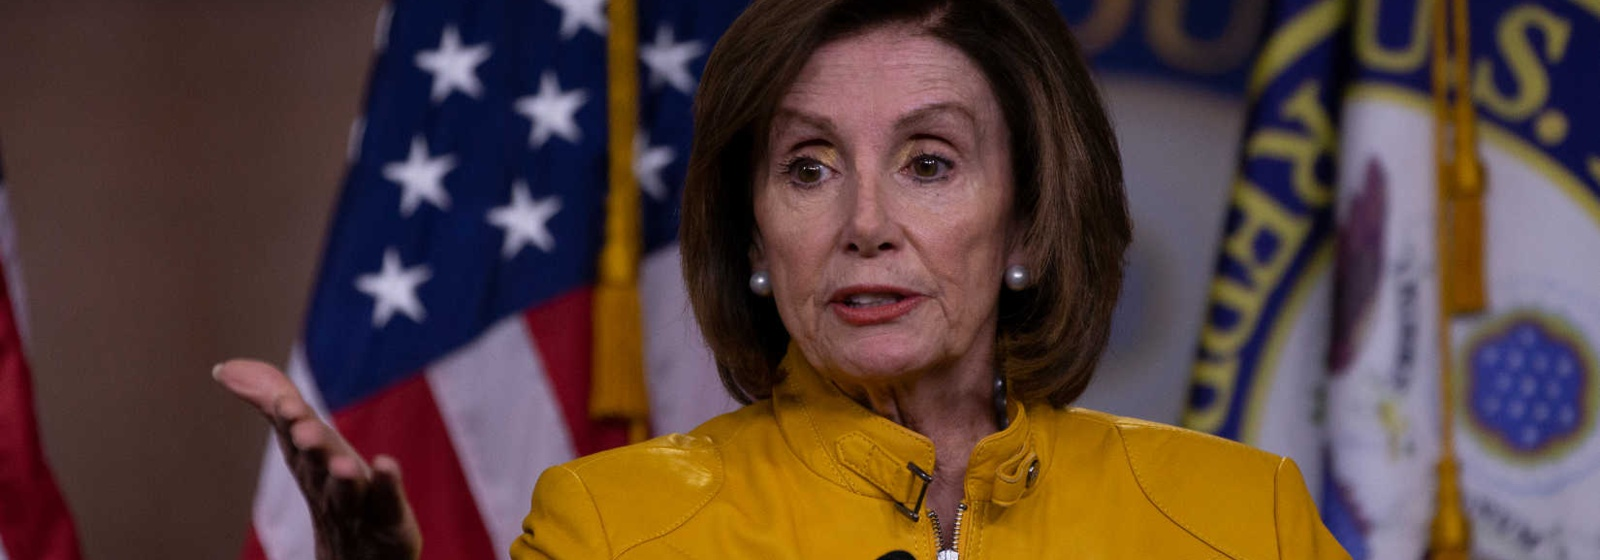 Pelosi and House Pass Bill to Make D.C. the 51st State